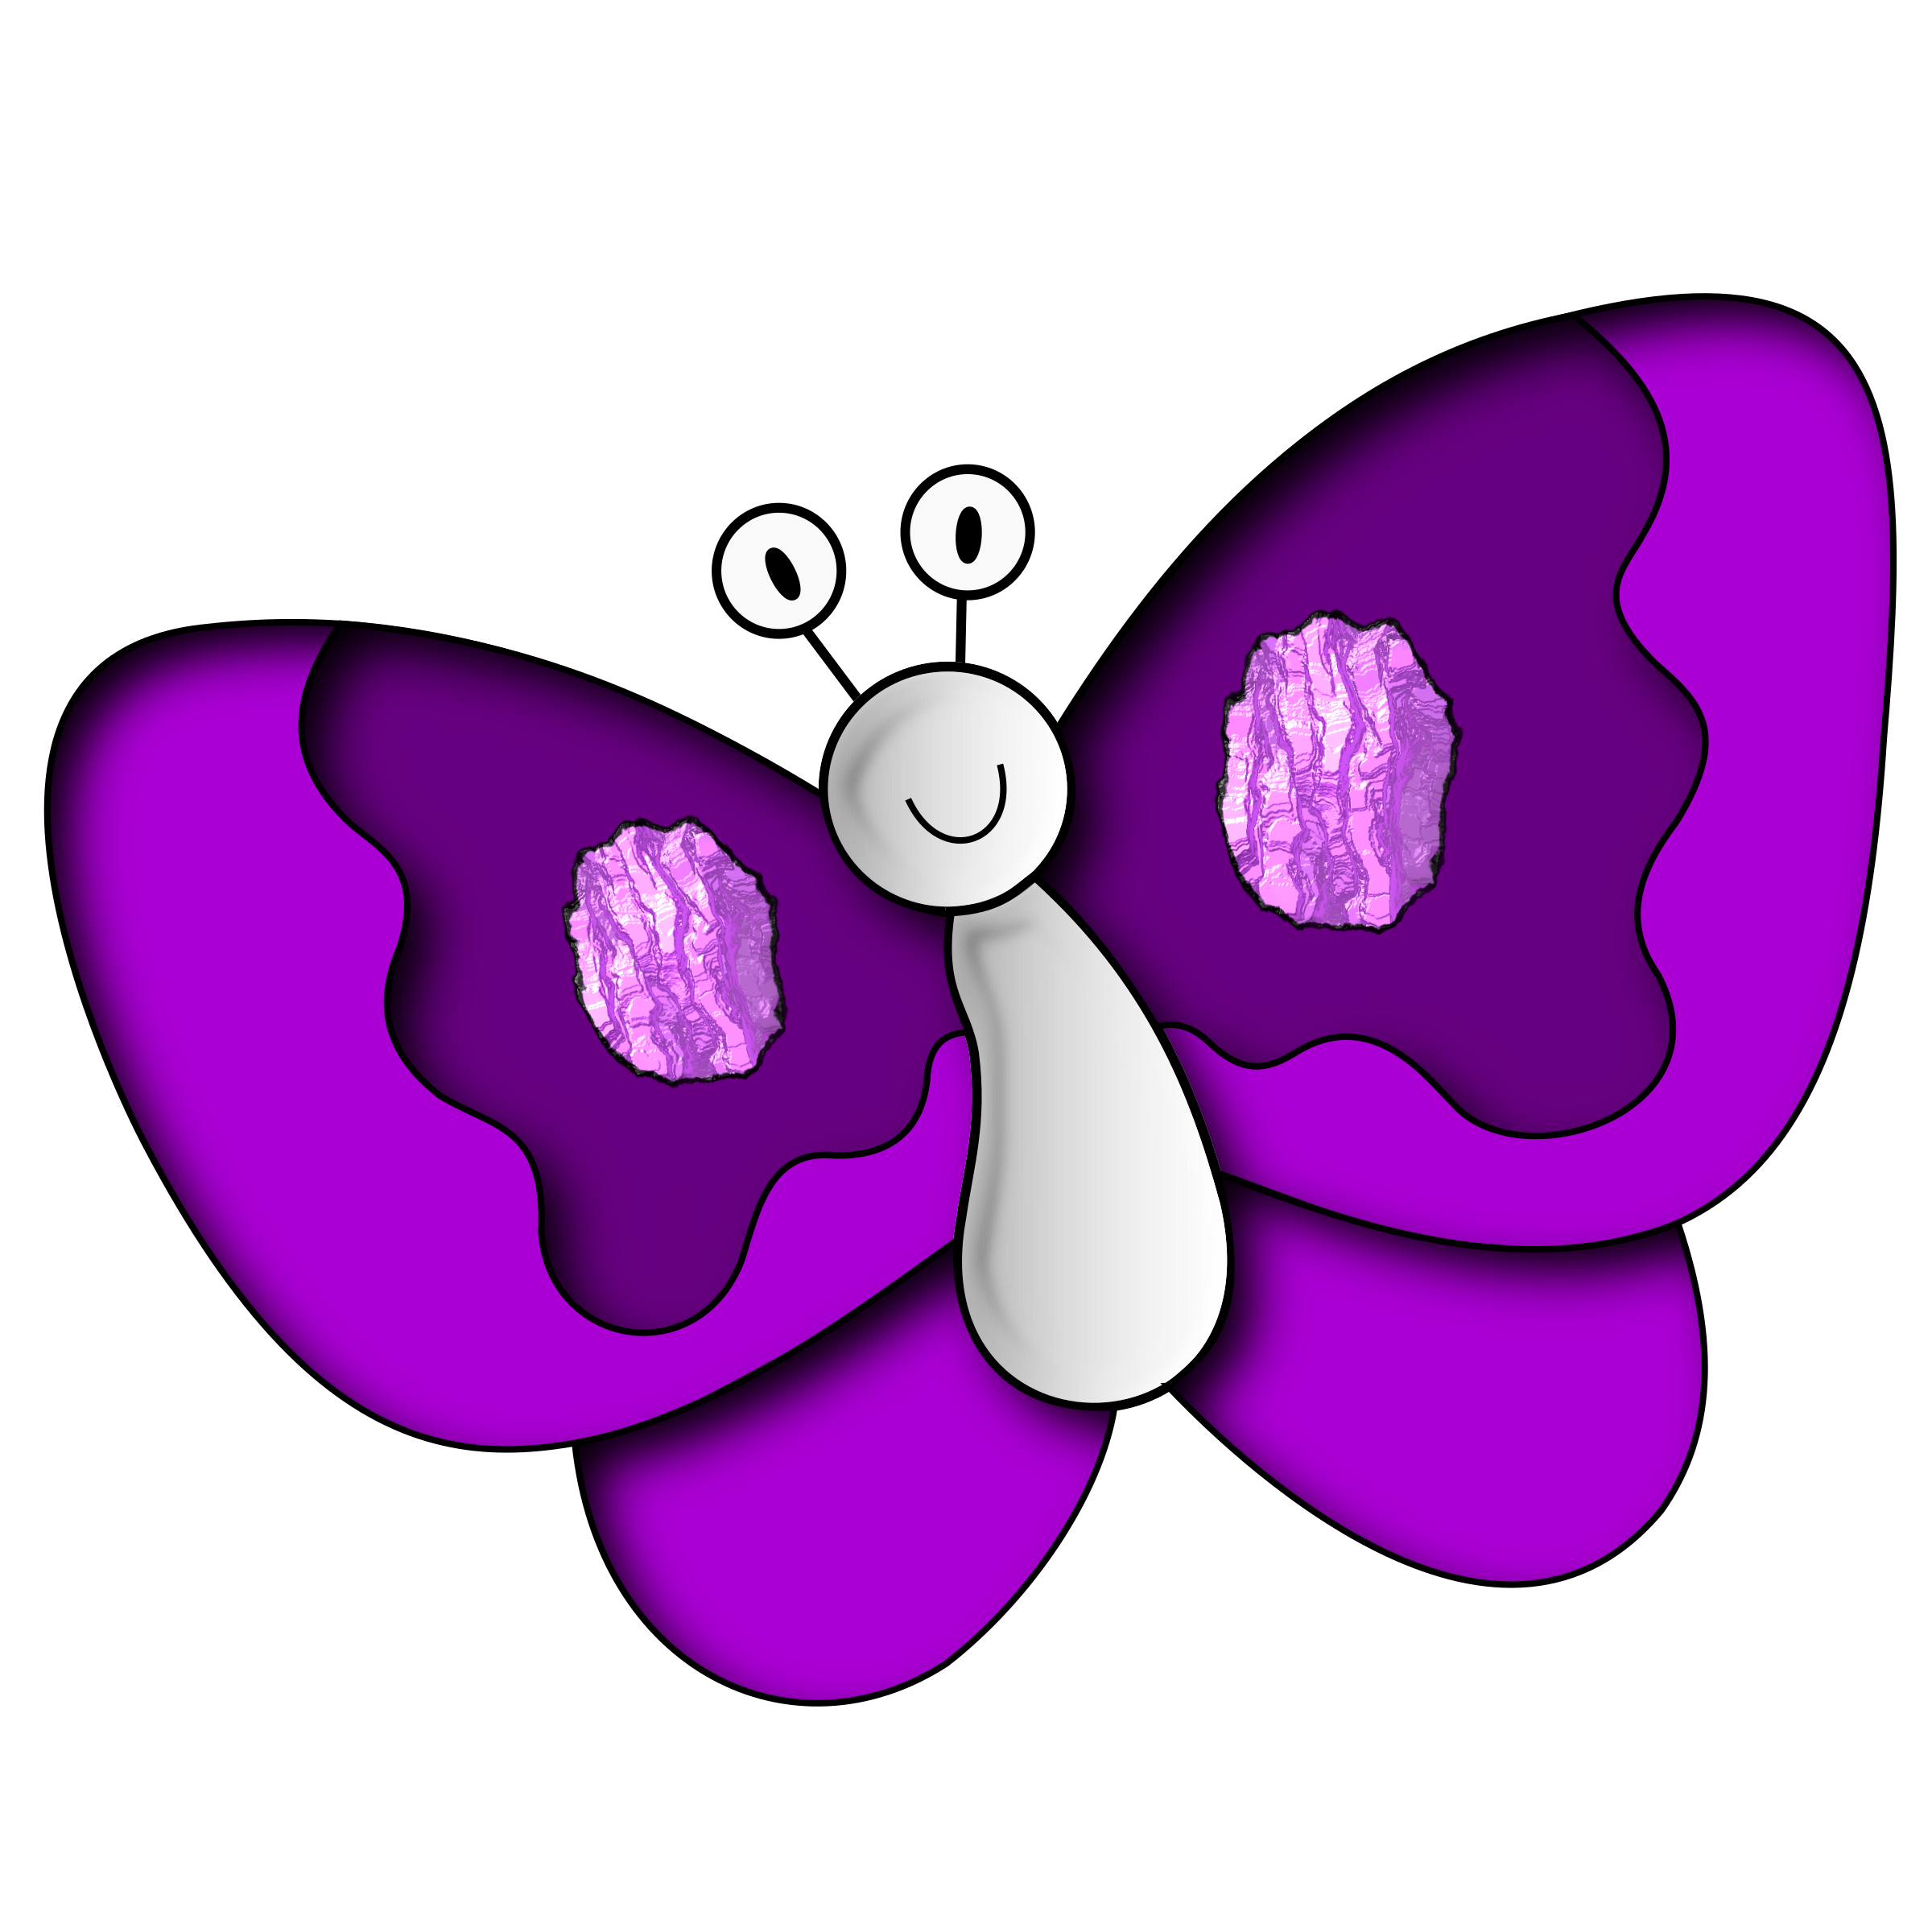 Purple clipart. Butterfly big image png